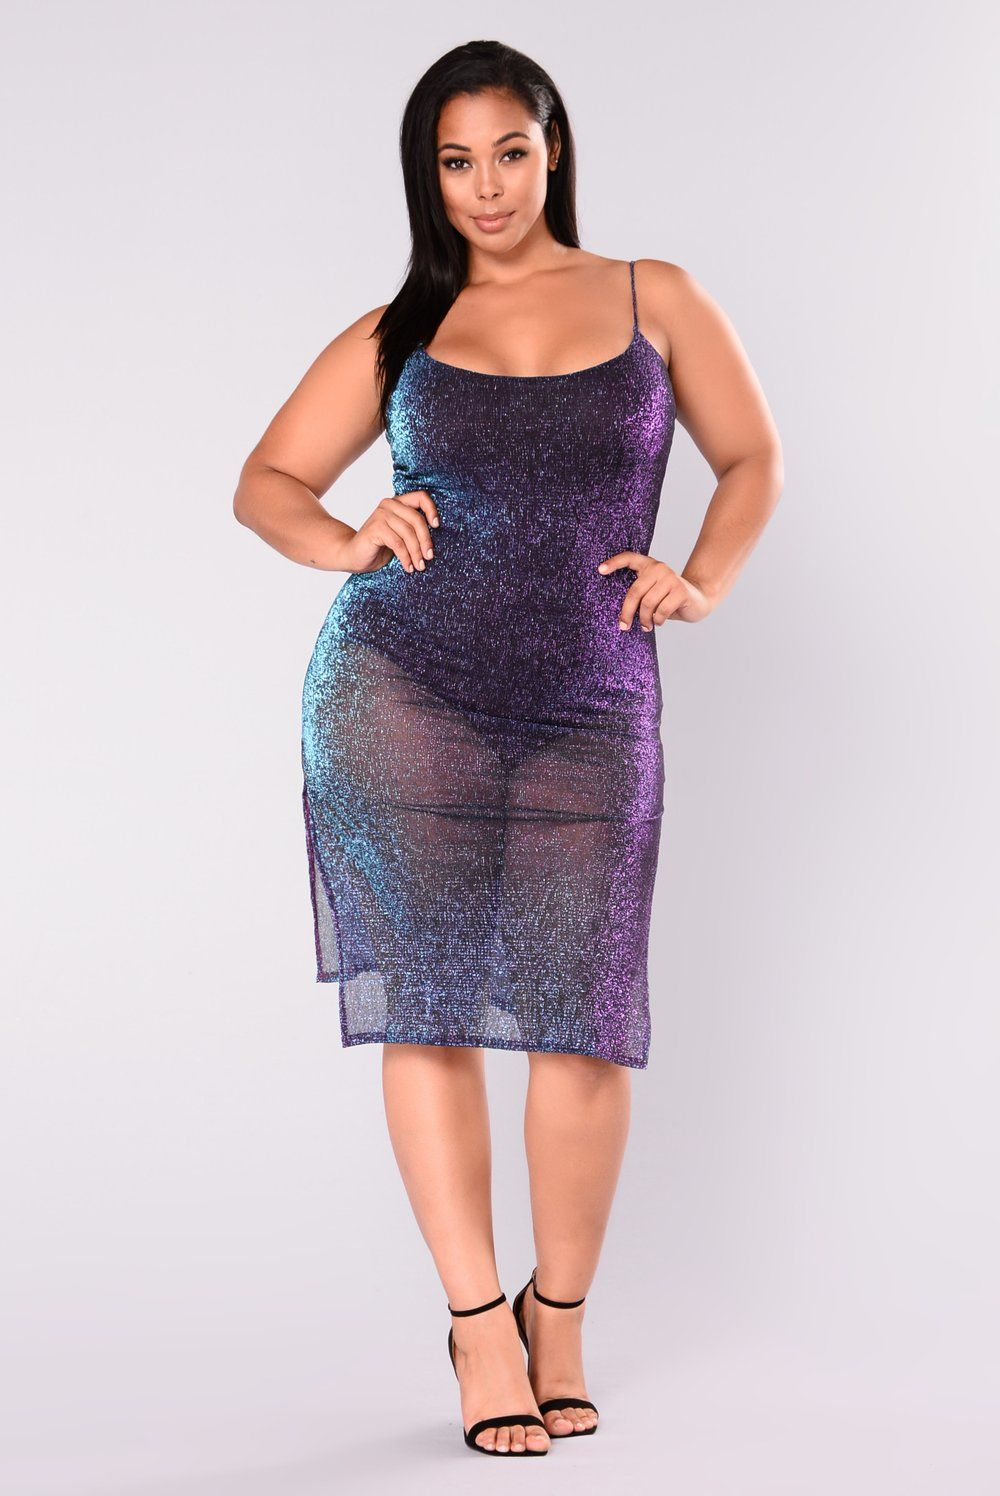 Catherine Metallic Dress - Purple Multi | Plus size | Dresses ...